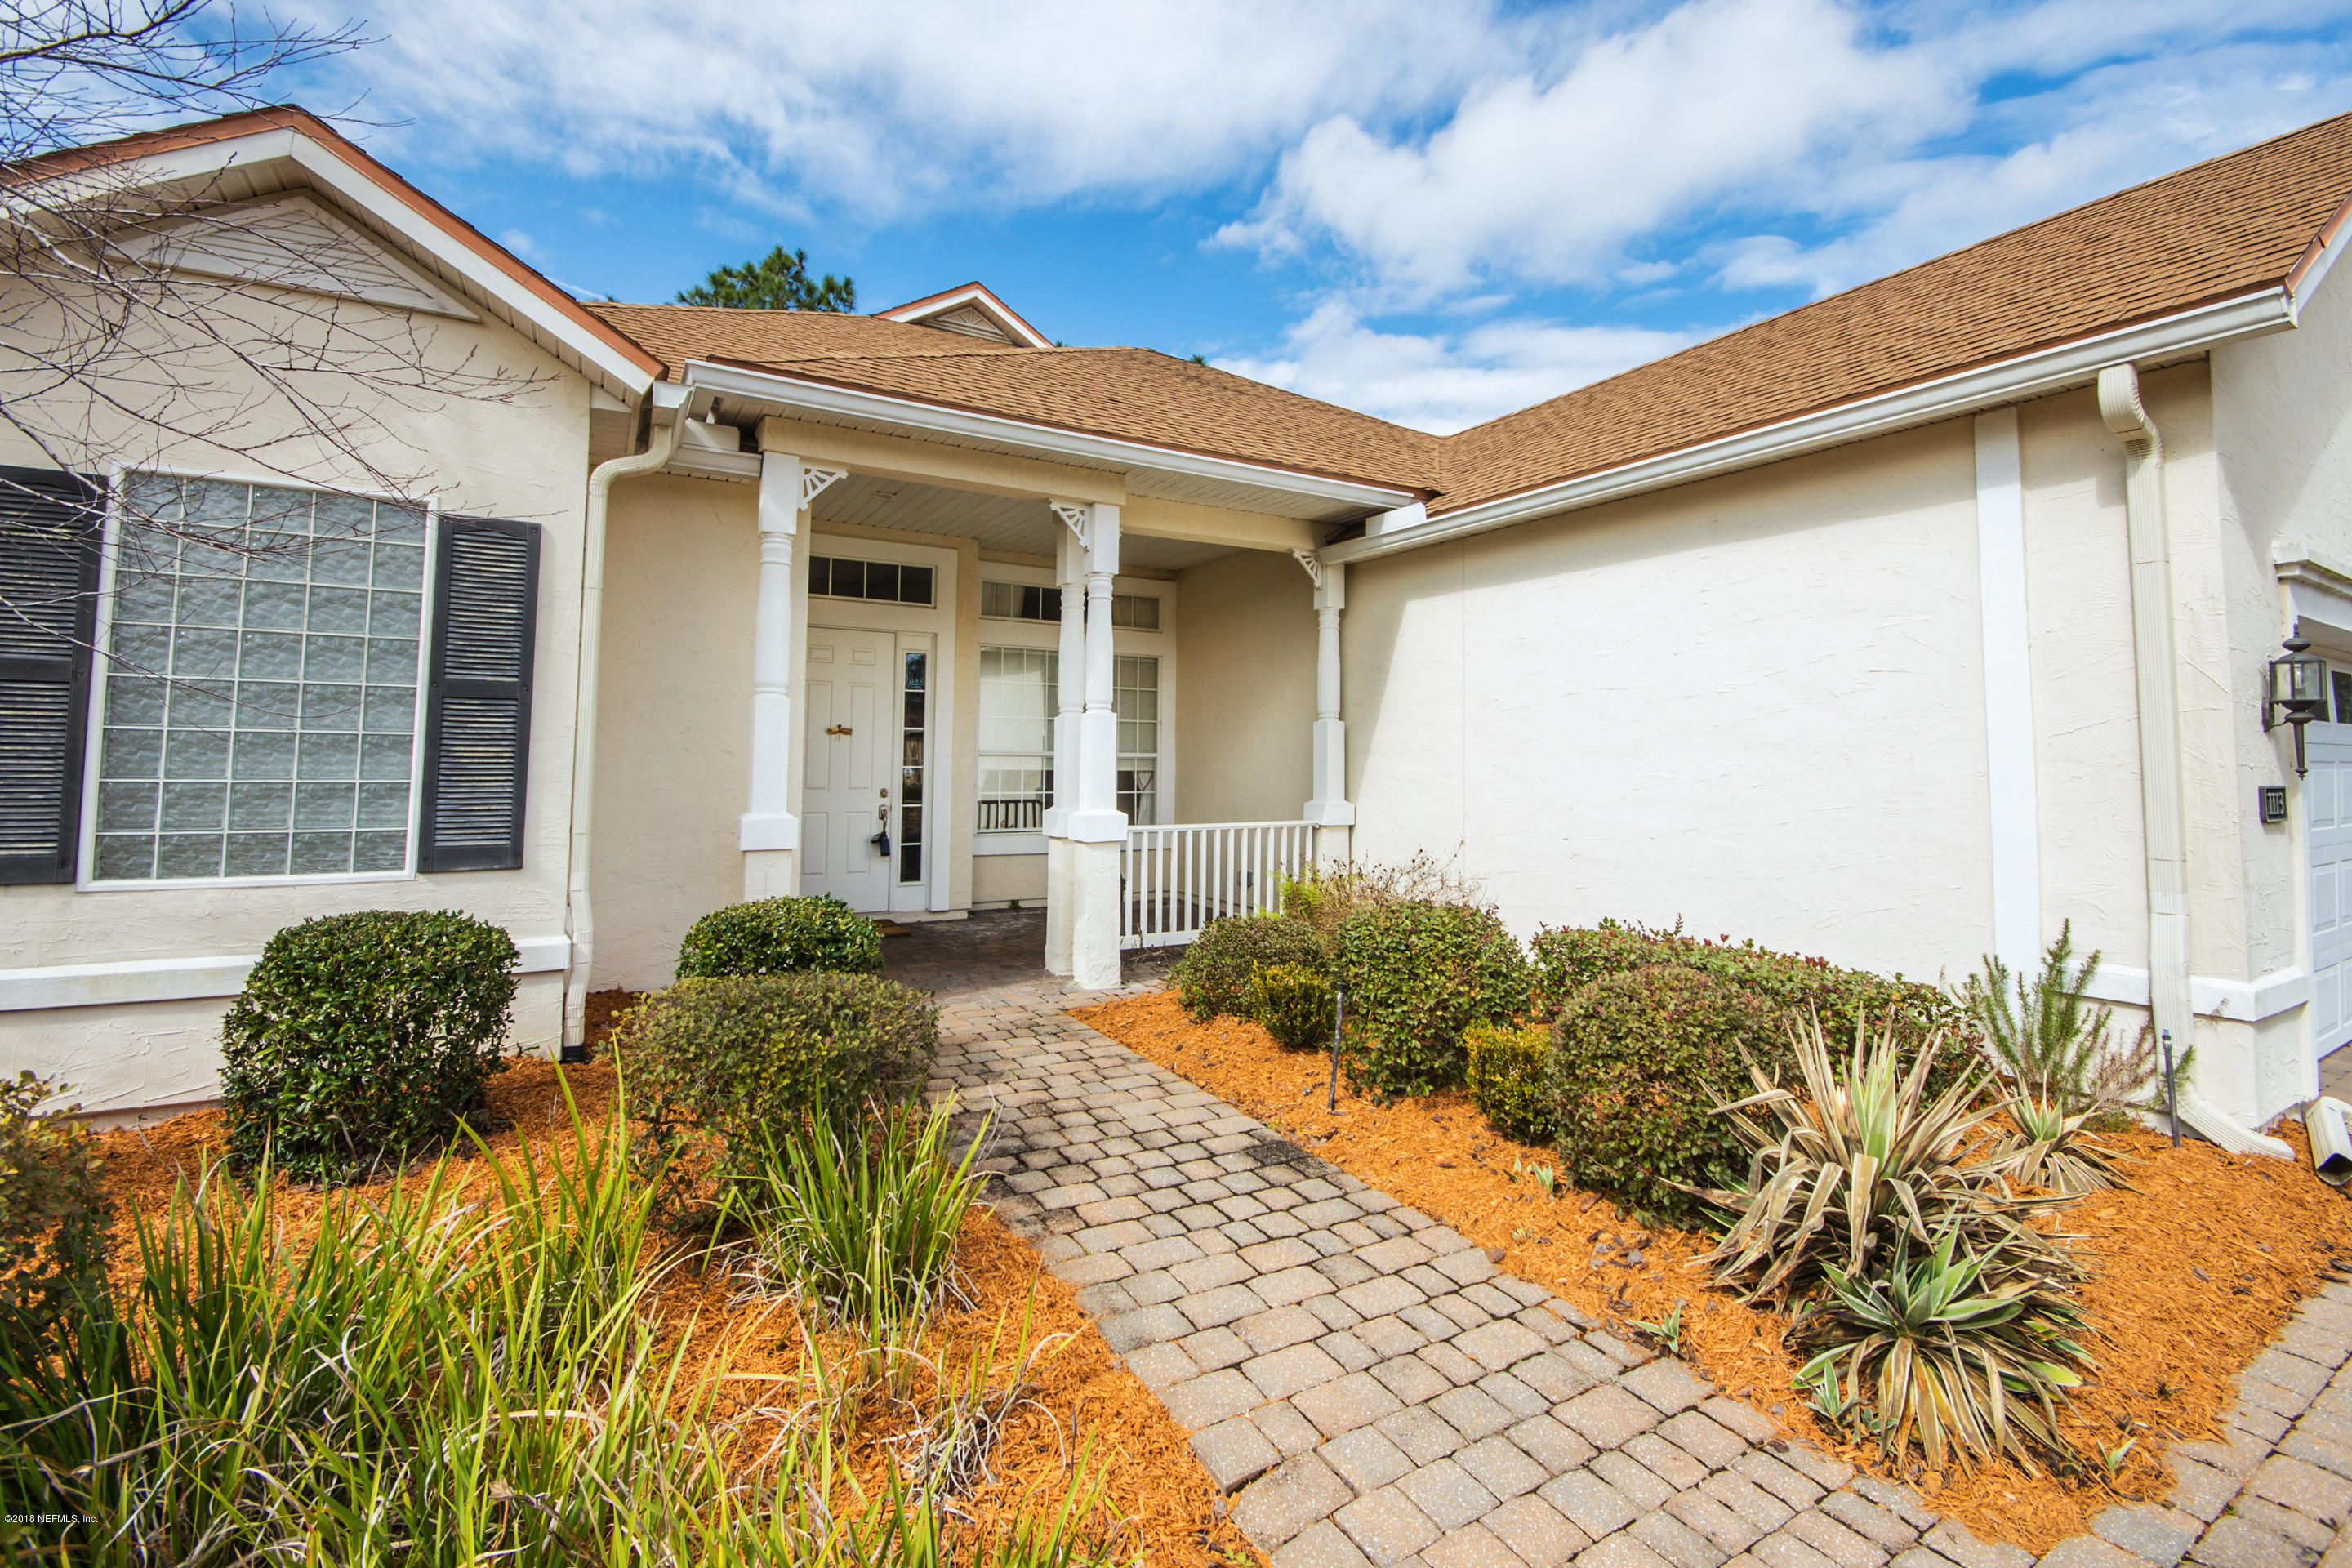 1113 INVERNESS, ST AUGUSTINE, FLORIDA 32092, 3 Bedrooms Bedrooms, ,2 BathroomsBathrooms,Residential - single family,For sale,INVERNESS,922750